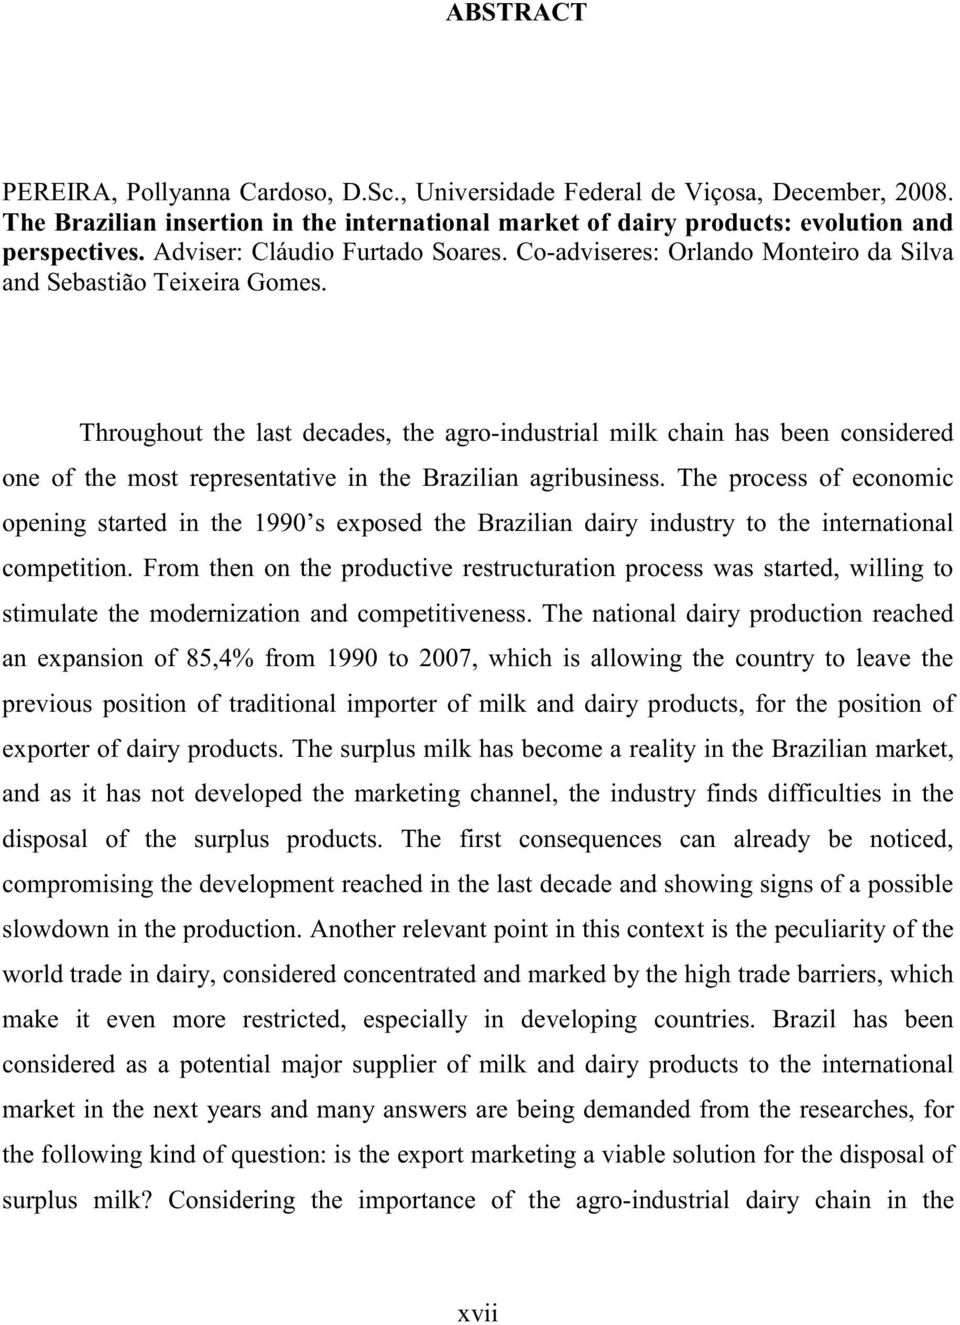 Throughout the last decades, the agro-industrial milk chain has been considered one of the most representative in the Brazilian agribusiness.